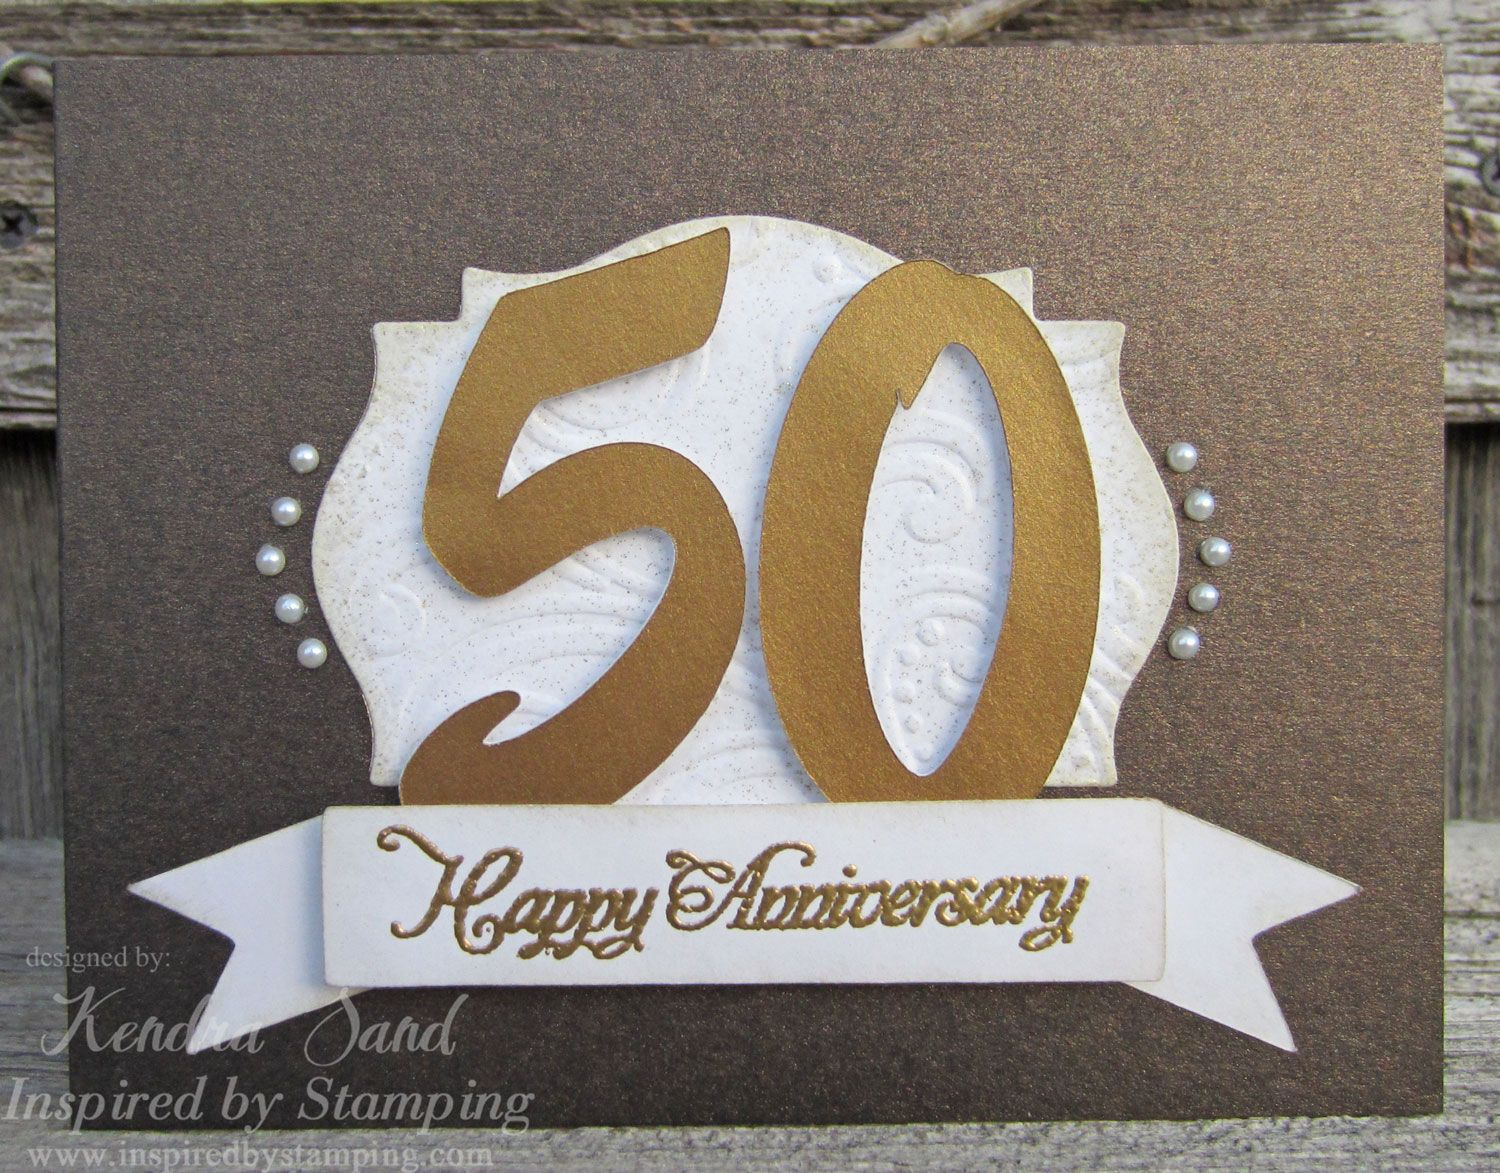 Good morning! recently i had a lady request two 50th anniversary